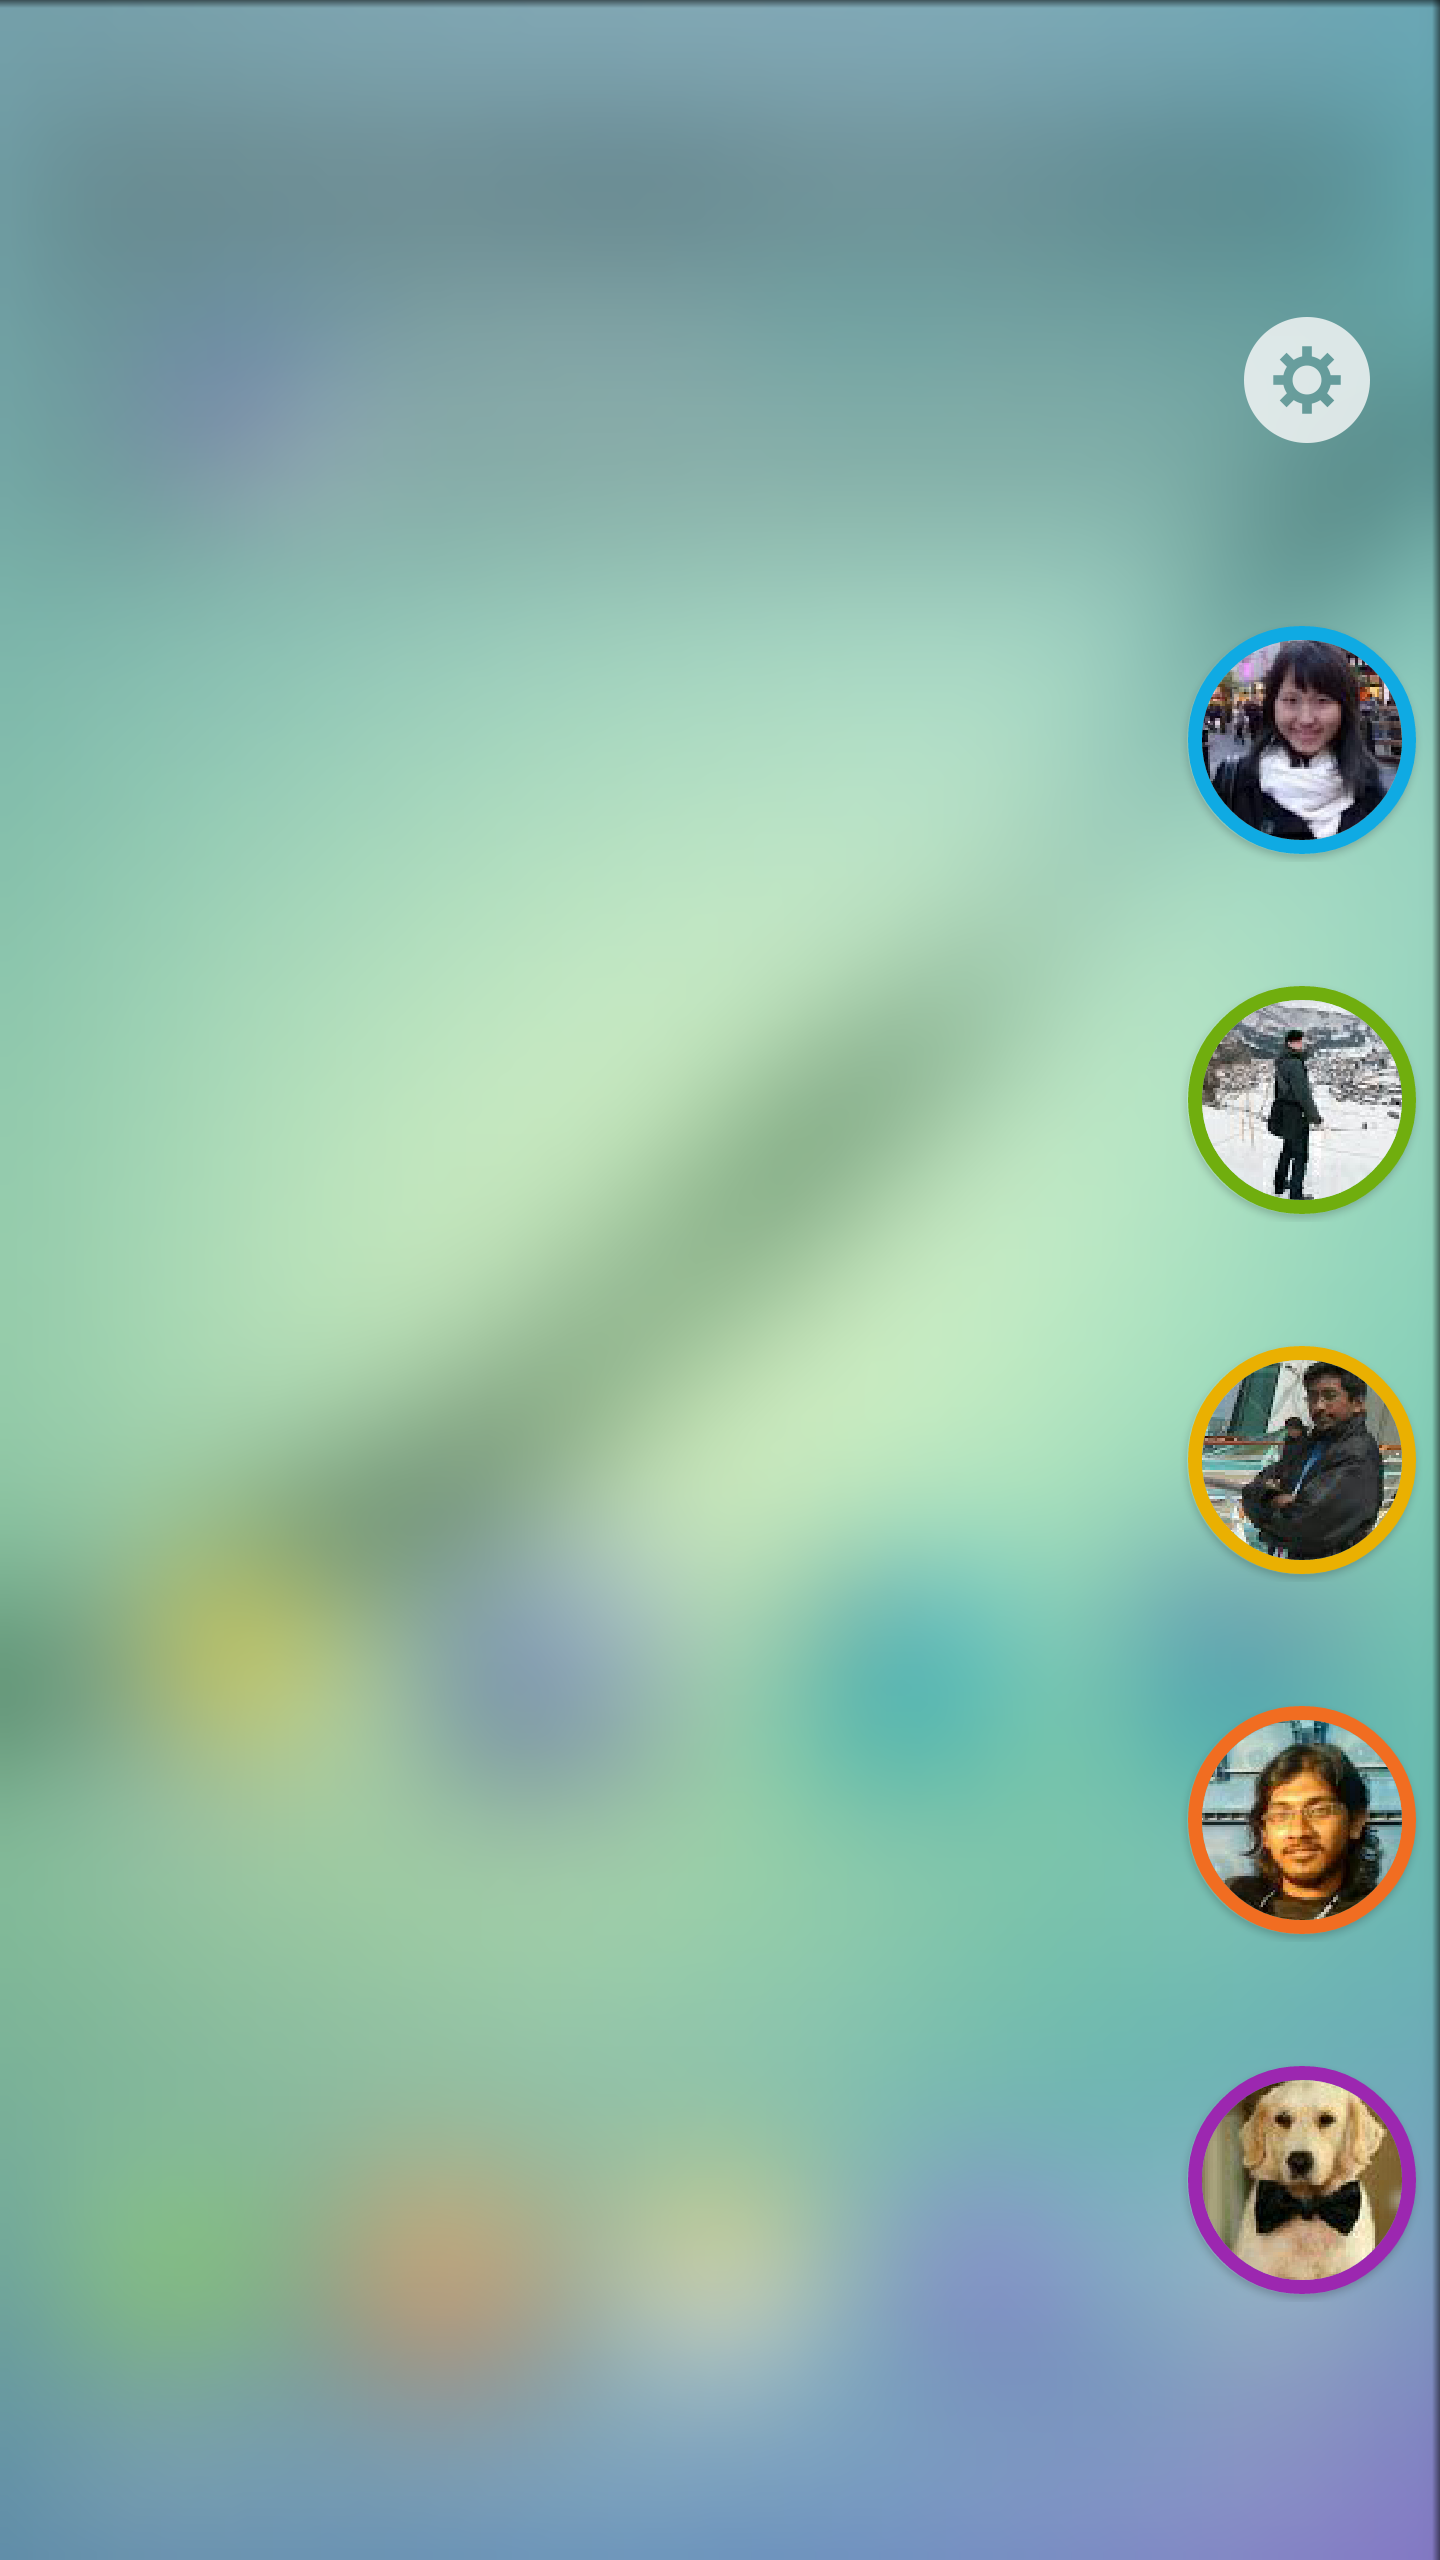 Pick your five favorite people for quick call and SMS access. You can assign each one a unique color.